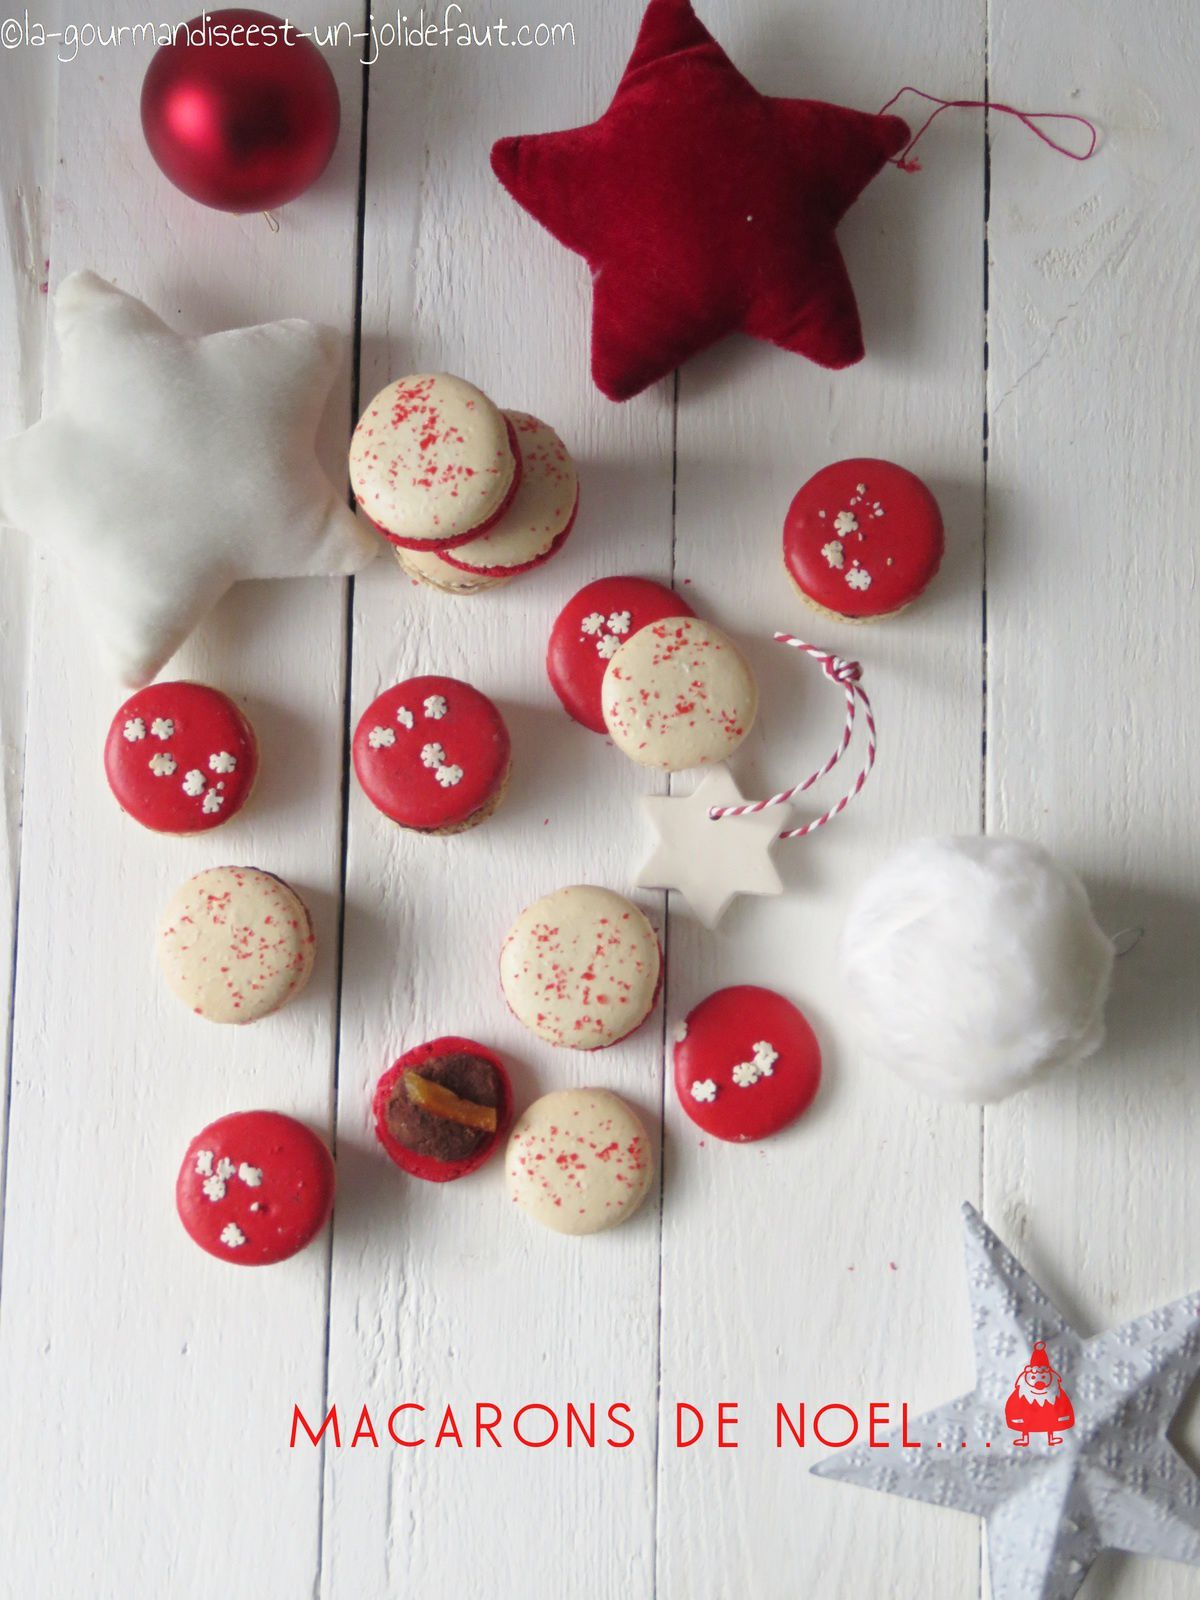 Macarons de noël {orange-pain d'épice}